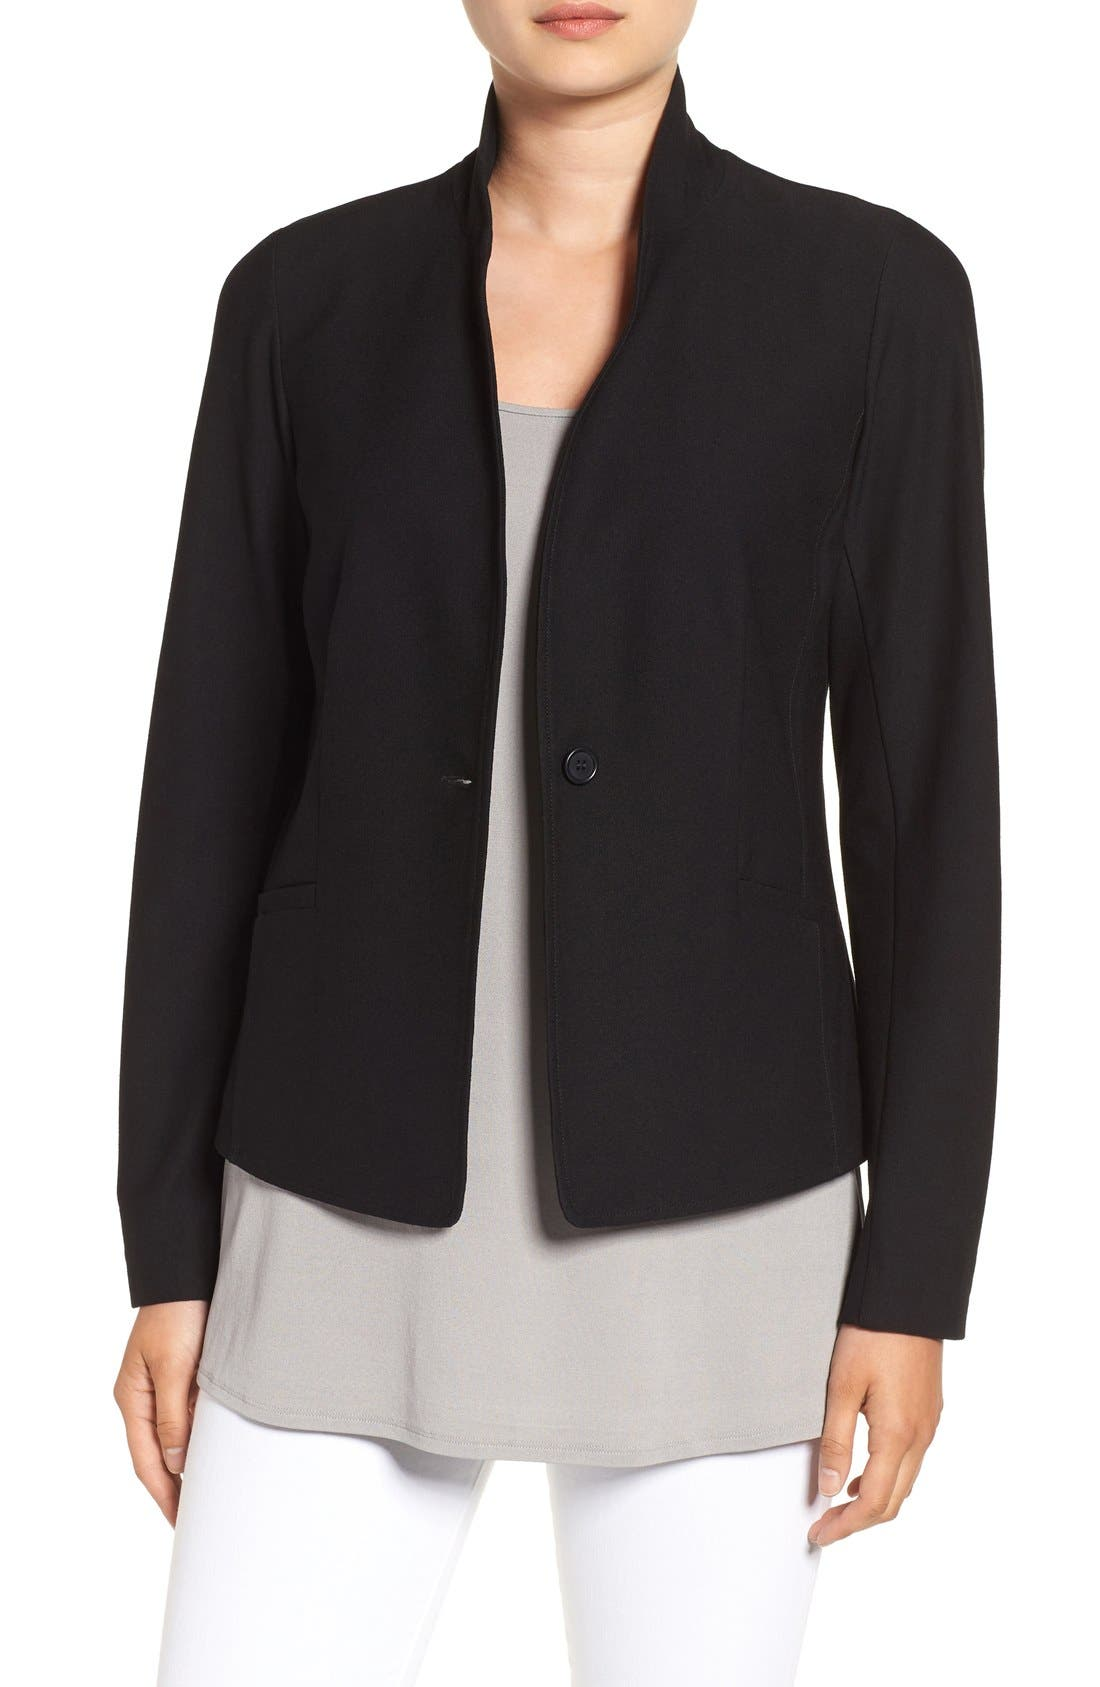 Main Image - Eileen Fisher Washable Stretch Crepe Jacket (Regular & Petite) (Nordstrom Exclusive)